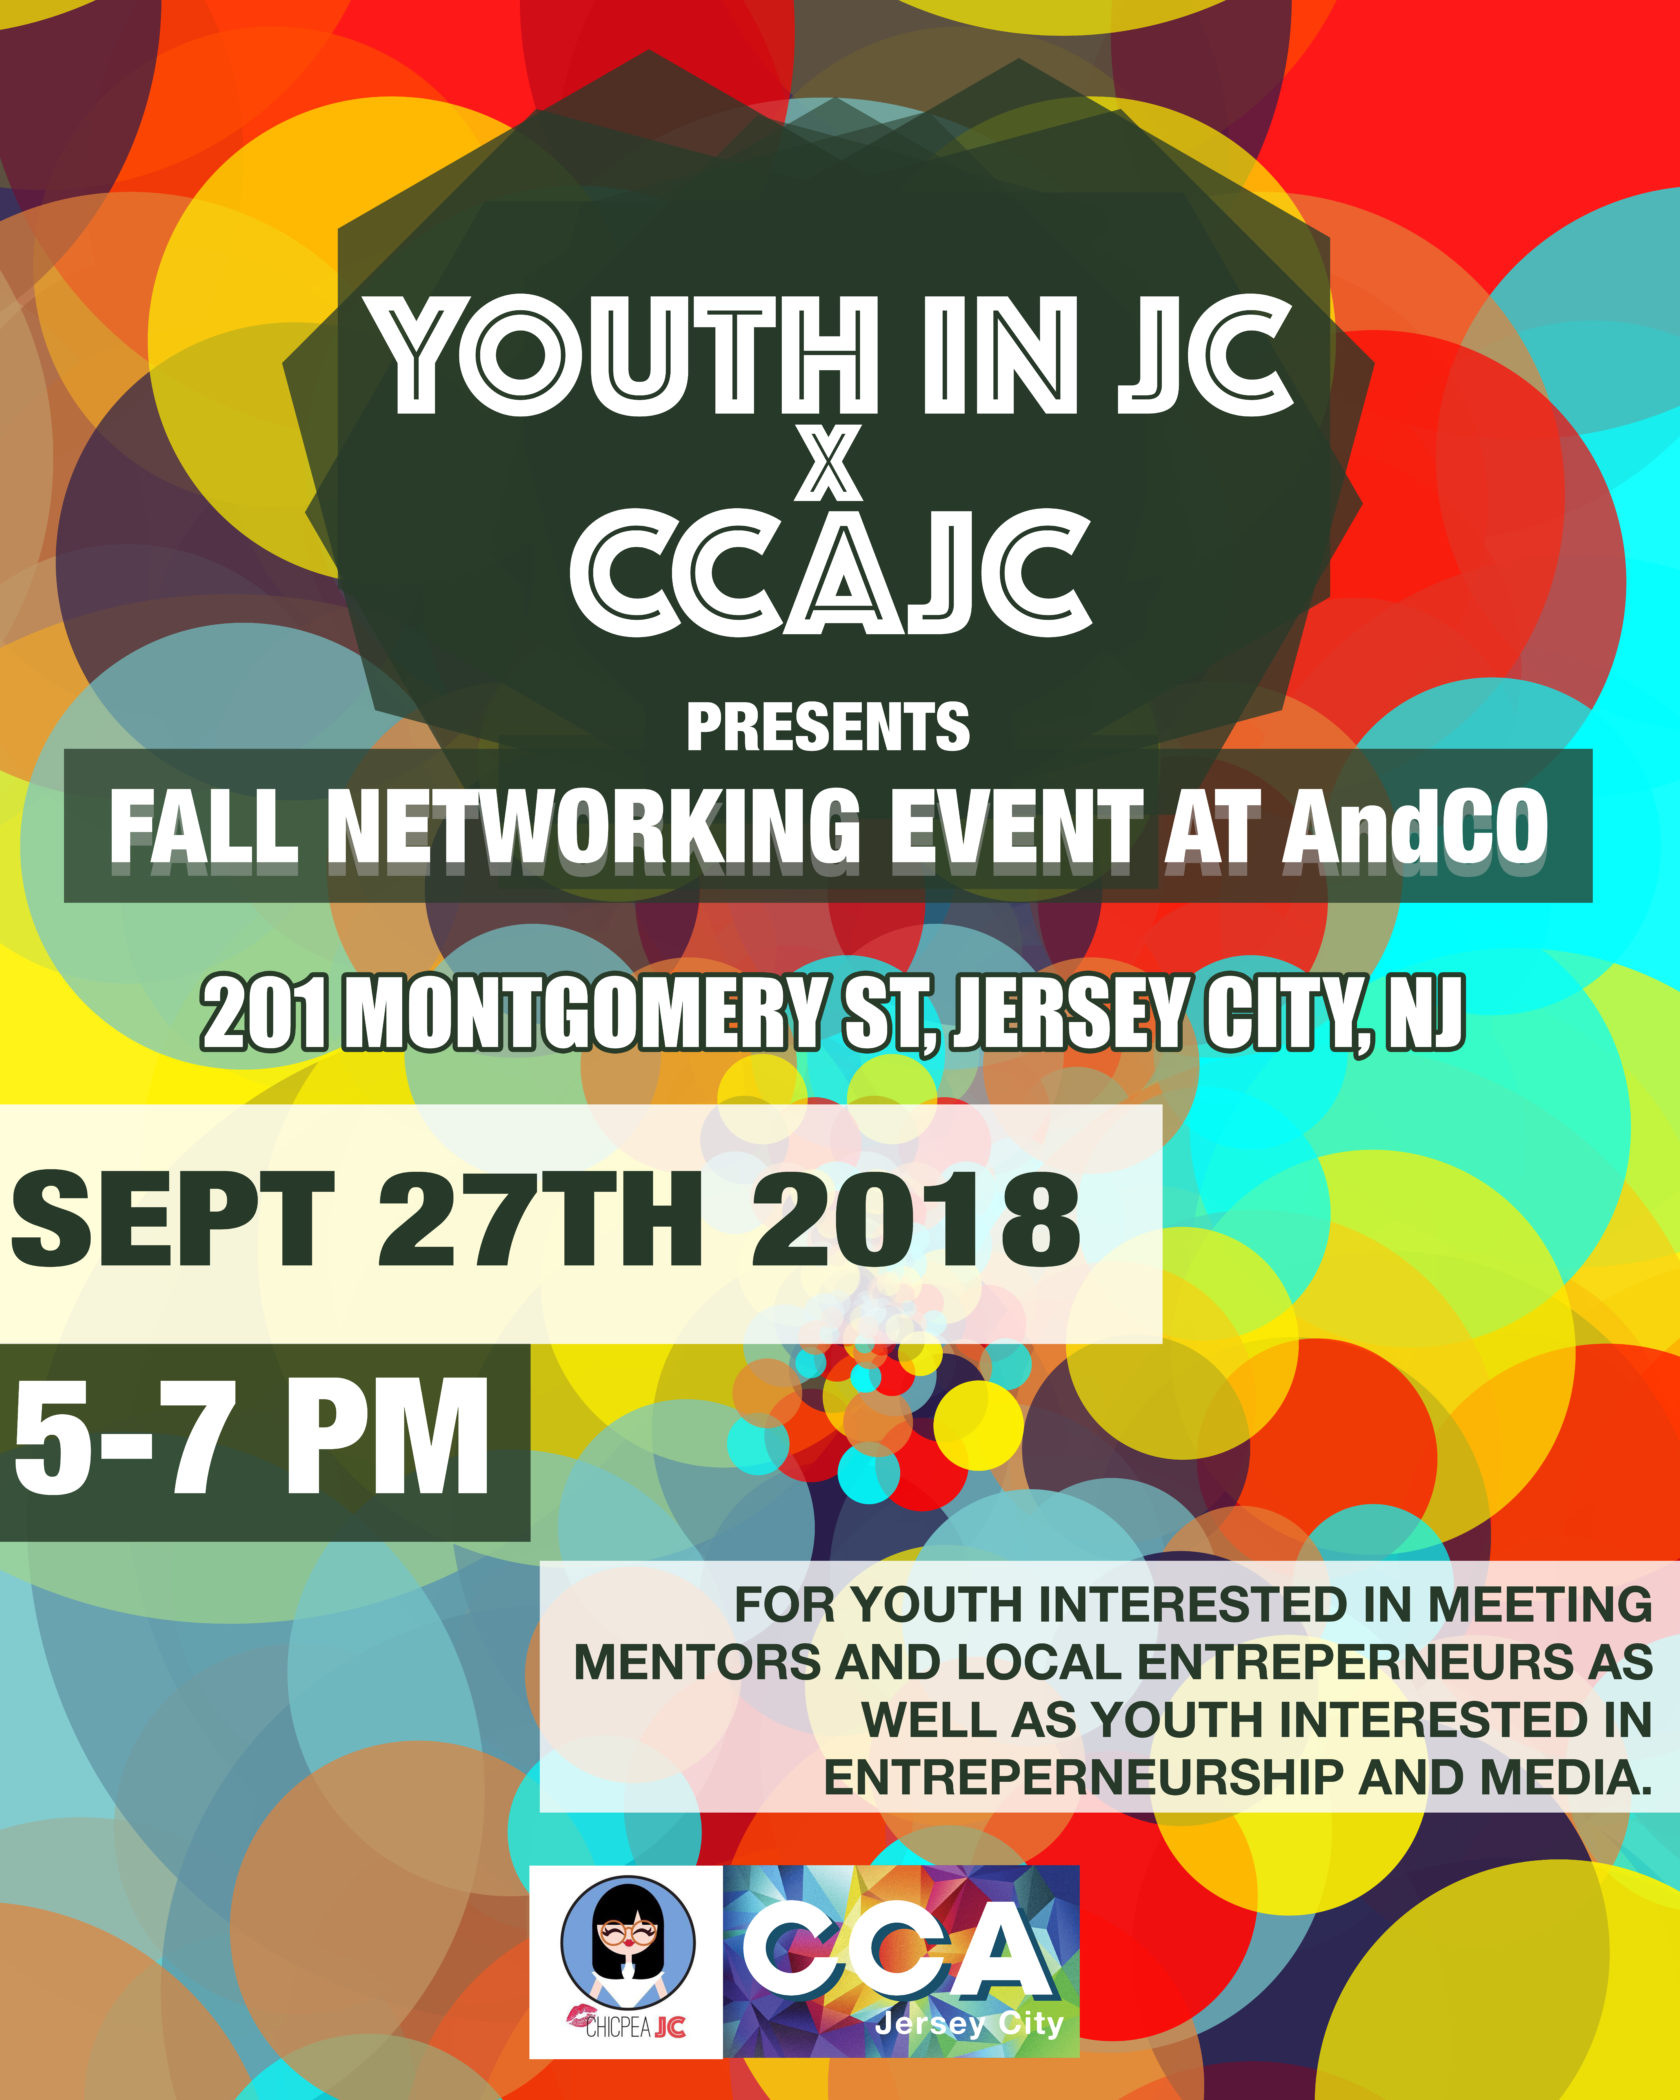 Youth in JC and CCAJC Present a Fall Youth Networking Event